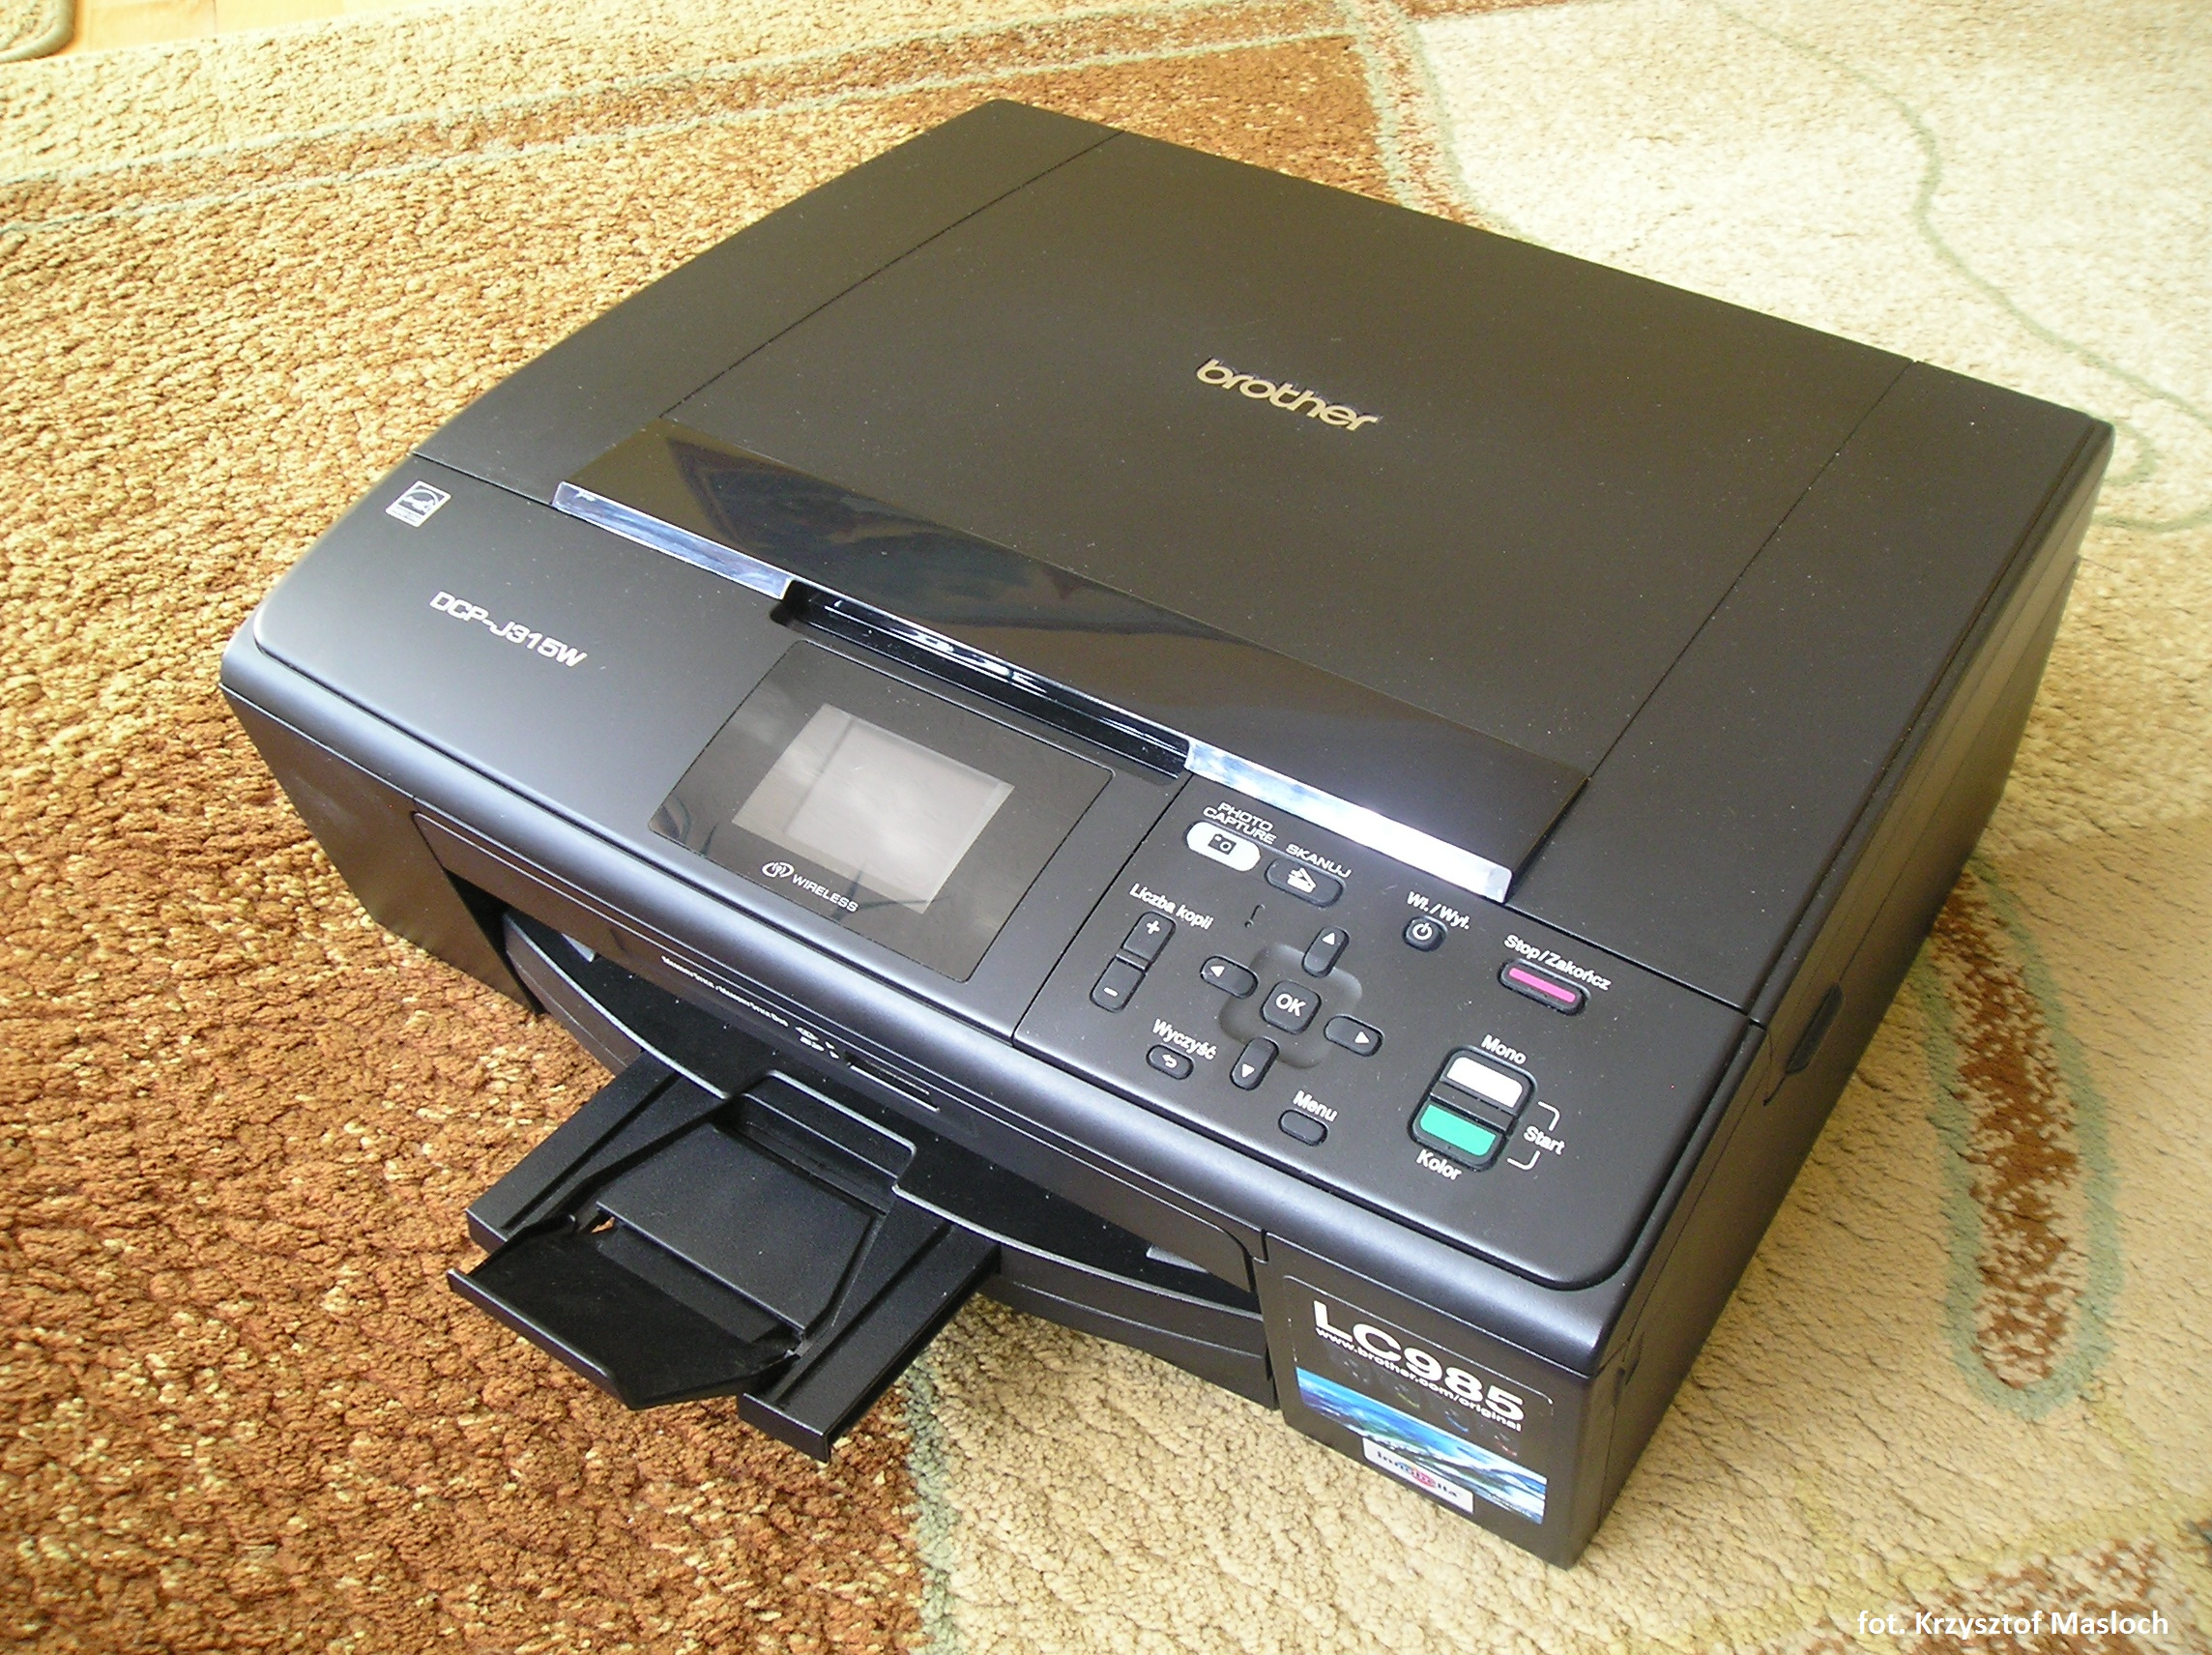 brother dcp j315w scanner drivers download rh refpawro xyz Brother MFC-9340CDW brother dcp-j315w service manual pdf